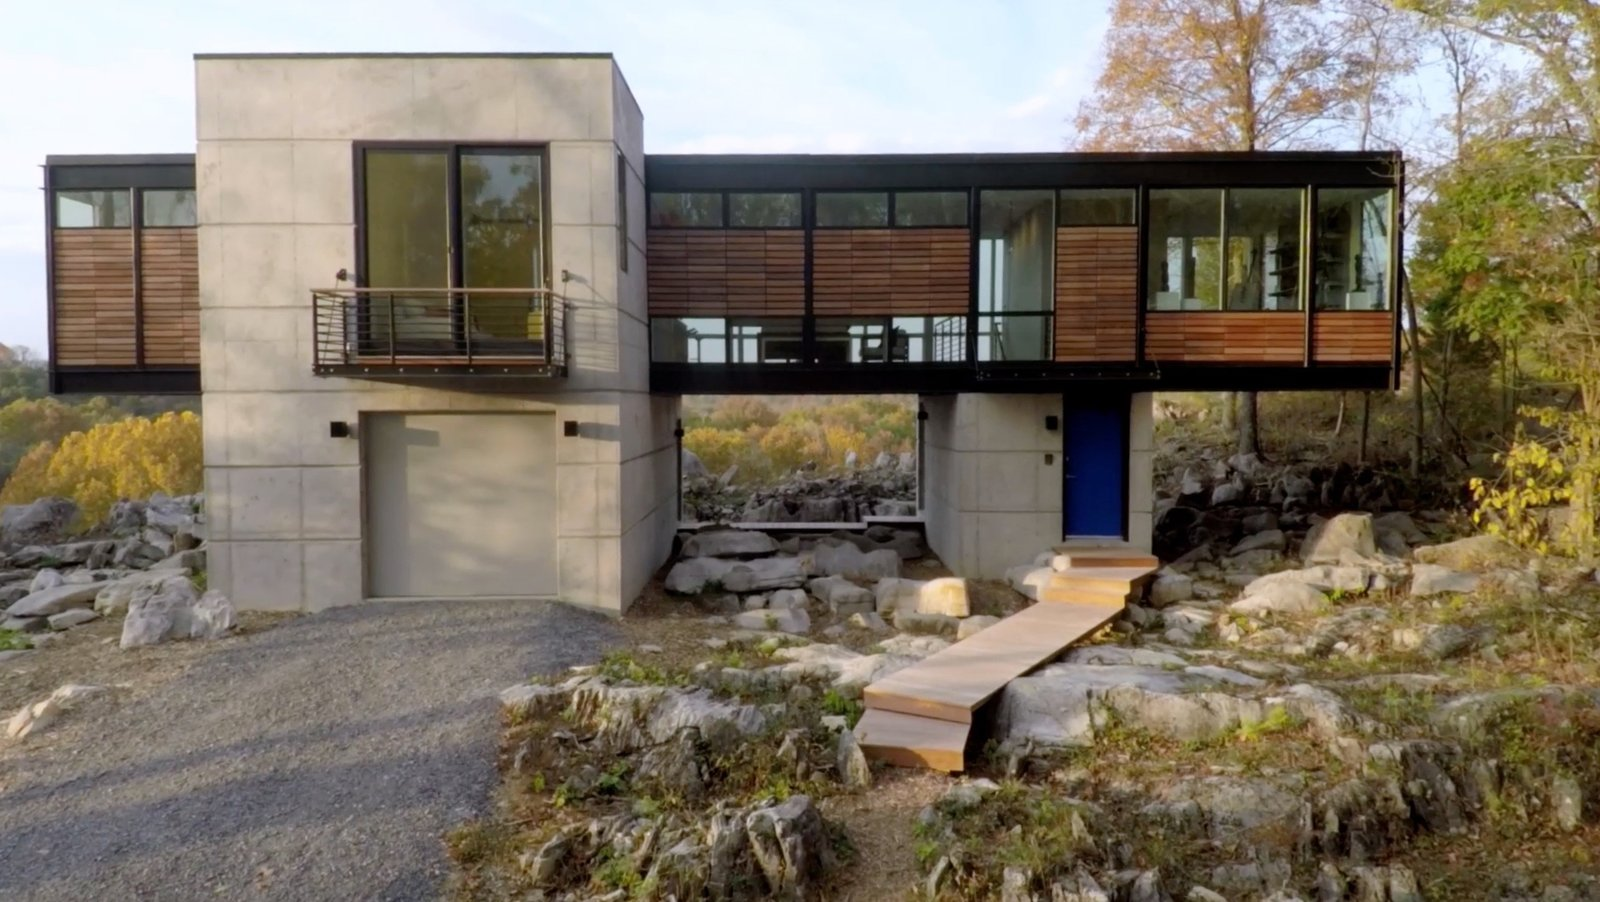 Strait envisioned a house that was molded into its surroundings and that disrupted the landscape as little as possible. Similar to her work, the structure delicately touches down in an organic way. When they were developing the plans on-site, they were successful at moving only the bare minimum of existing boulders.  Photo 2 of 5 in Watch How a Sculptor's Cliffside Glass House Seems to Grow Out of the Rocks